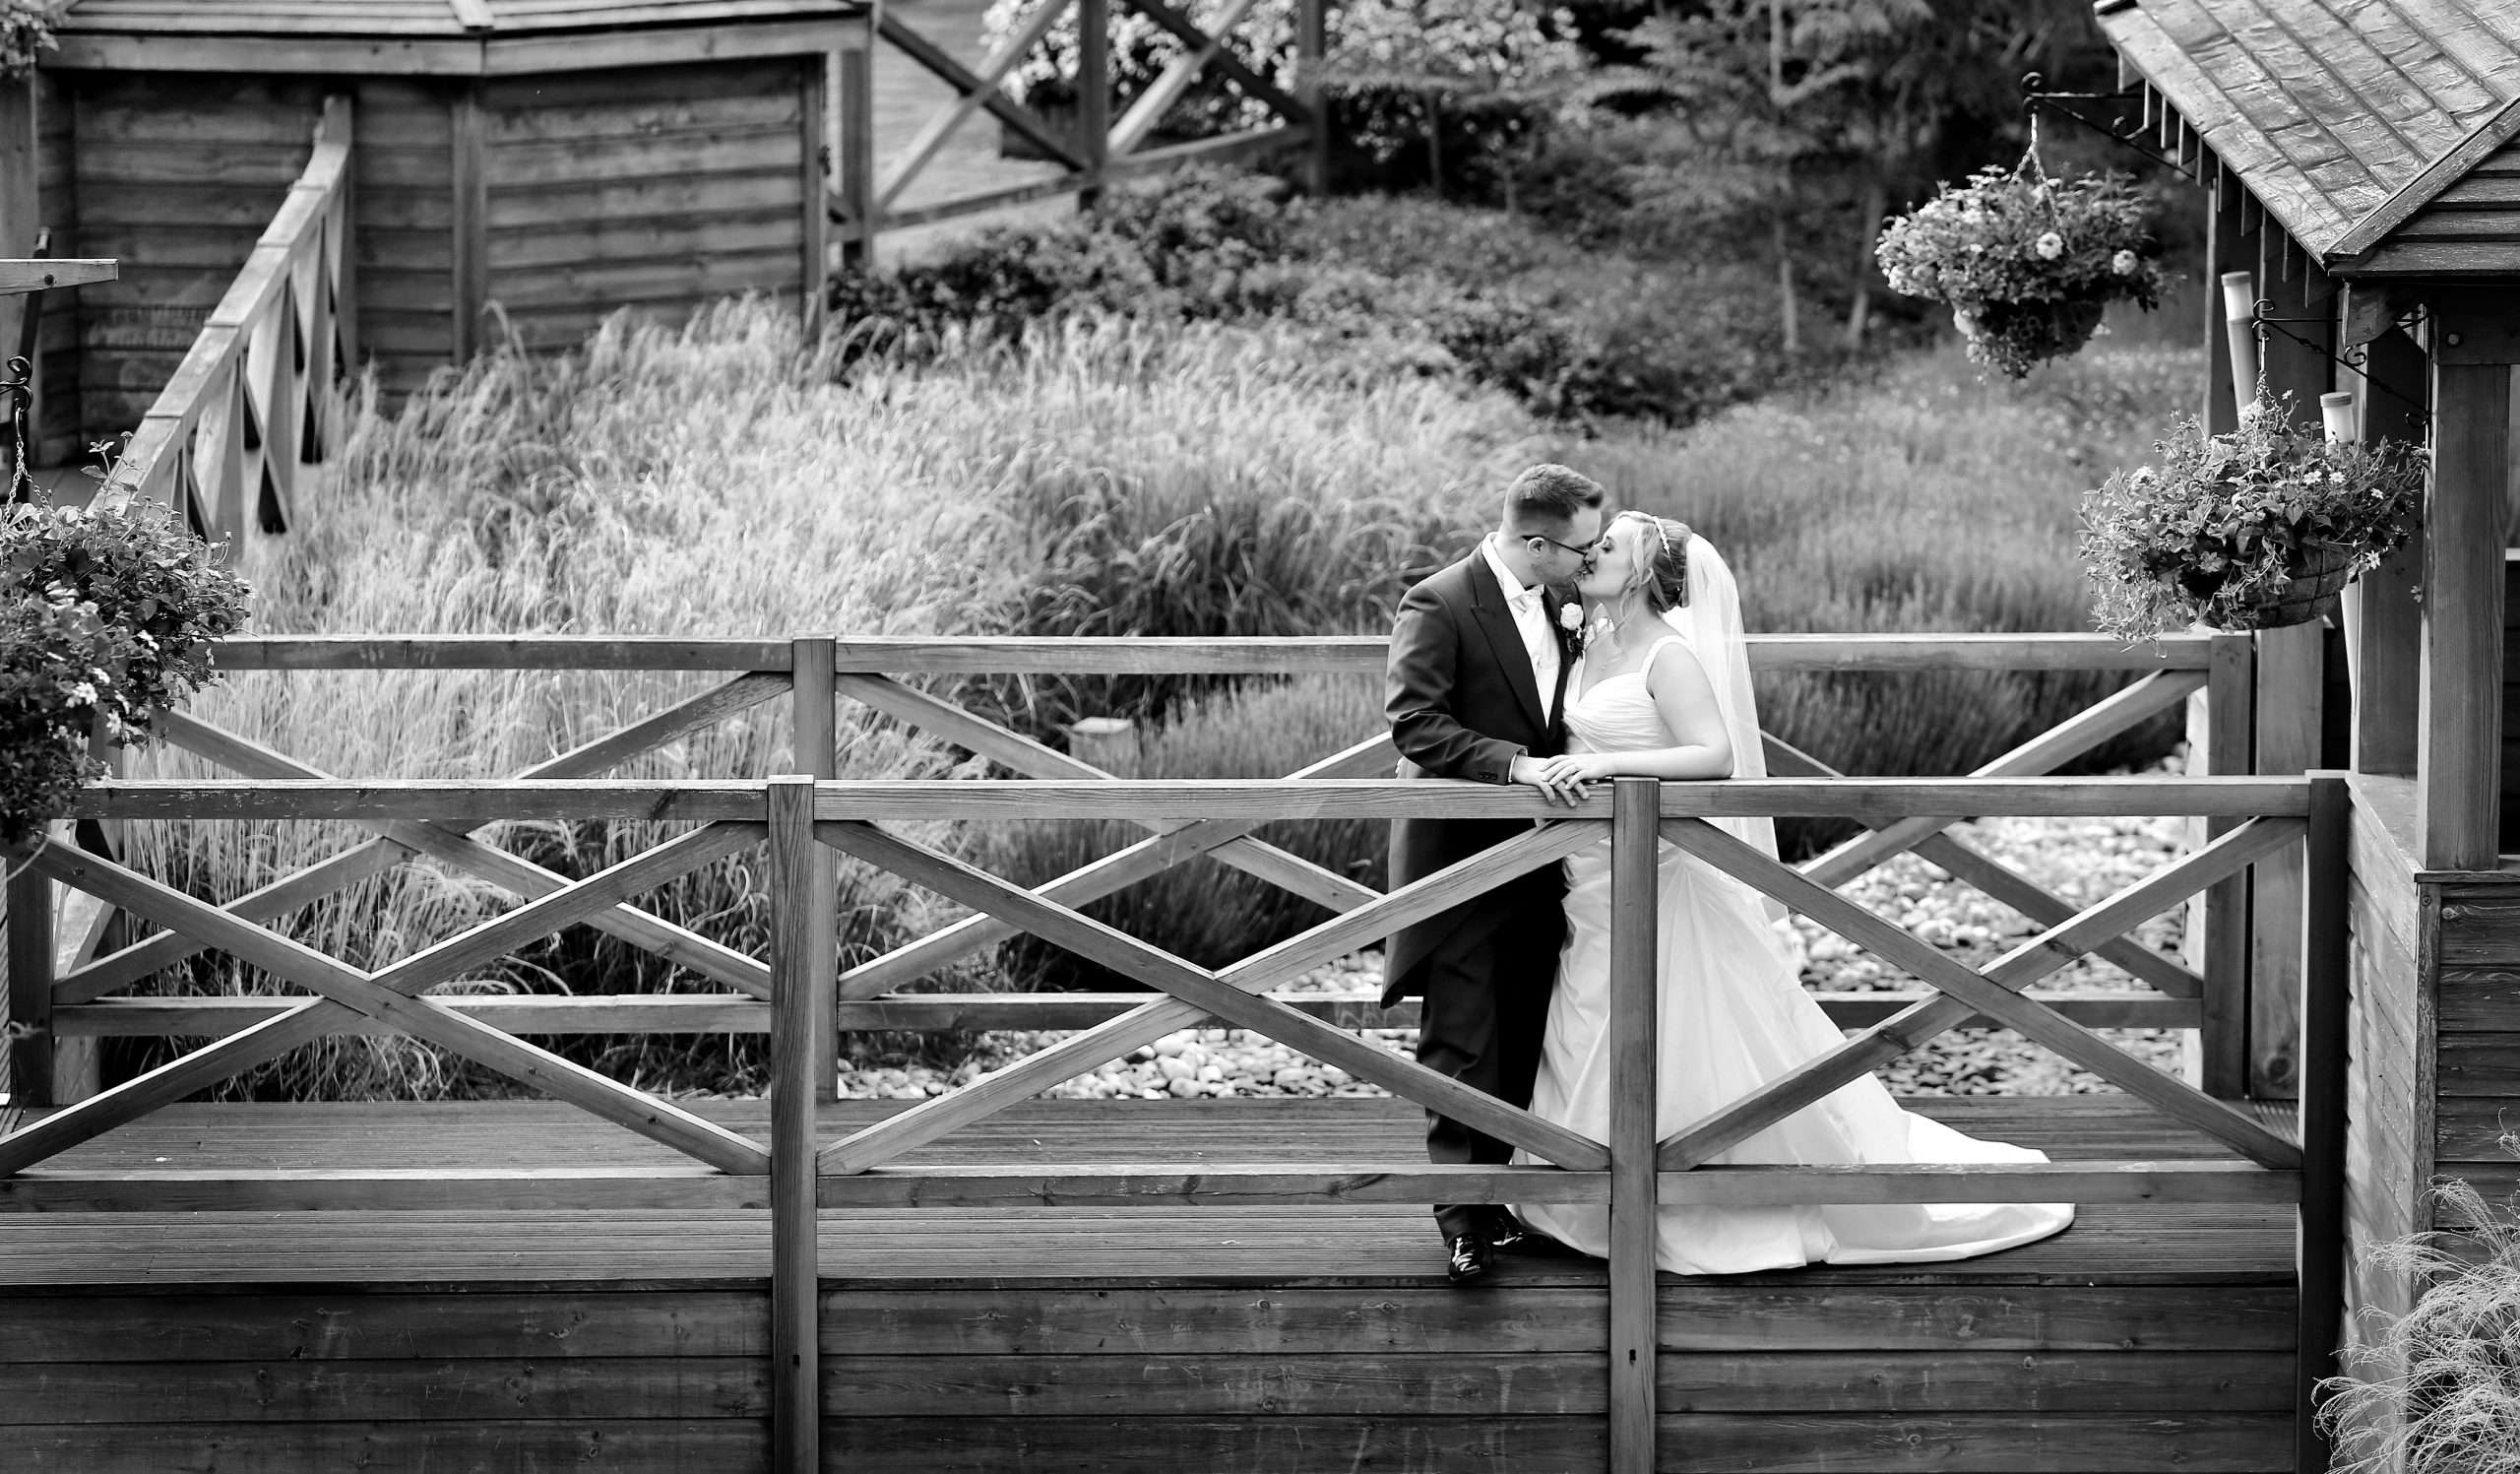 Black and white photo of Lisa and Darren on their wedding day. They are stood on a wooden walkway and are kissing